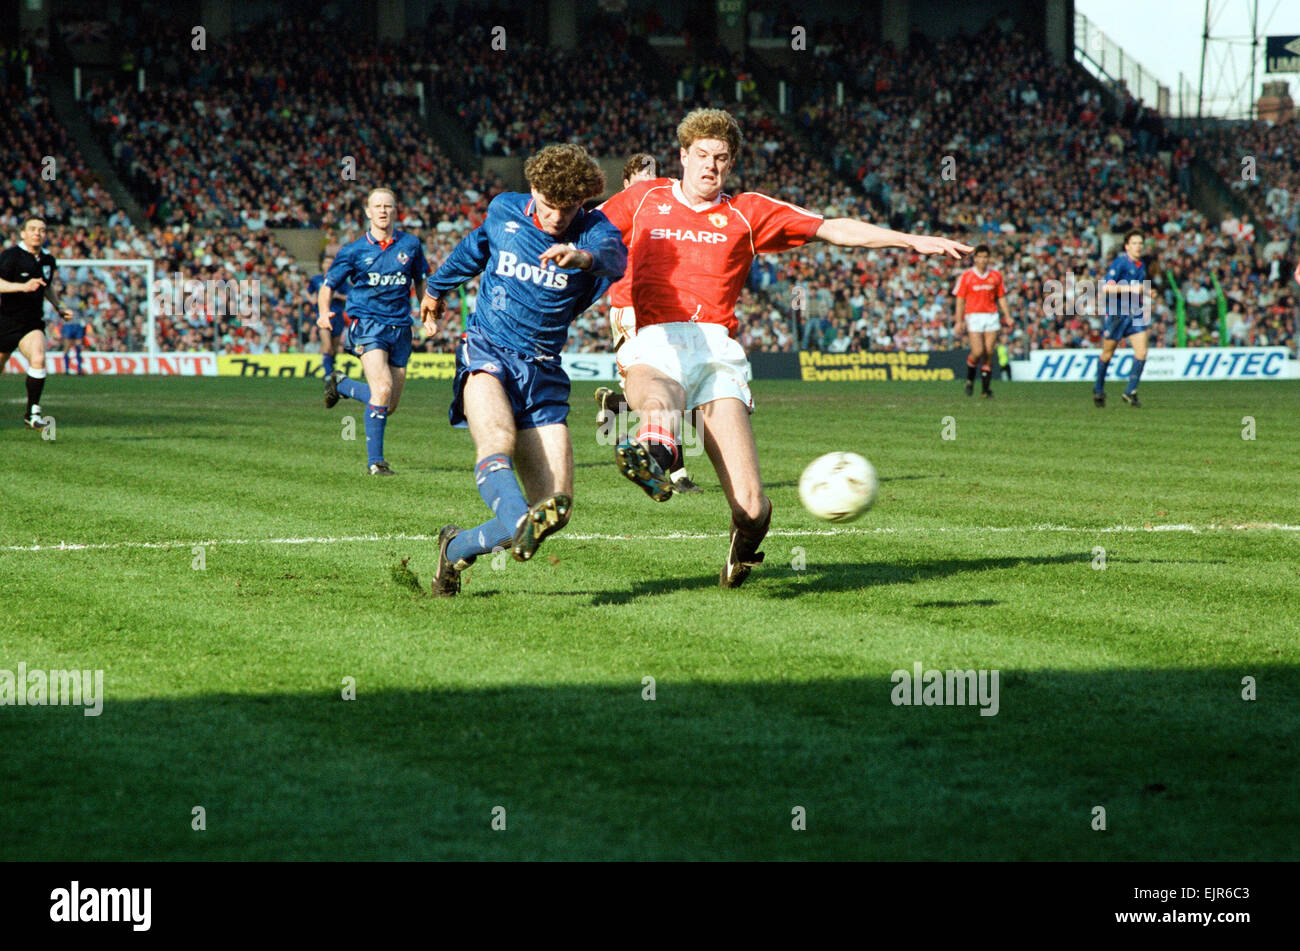 Ian Marshall on the ball. FA Cup. Manchester United 3 v Oldham Athletic 3. 8th April 1990 - Stock Image